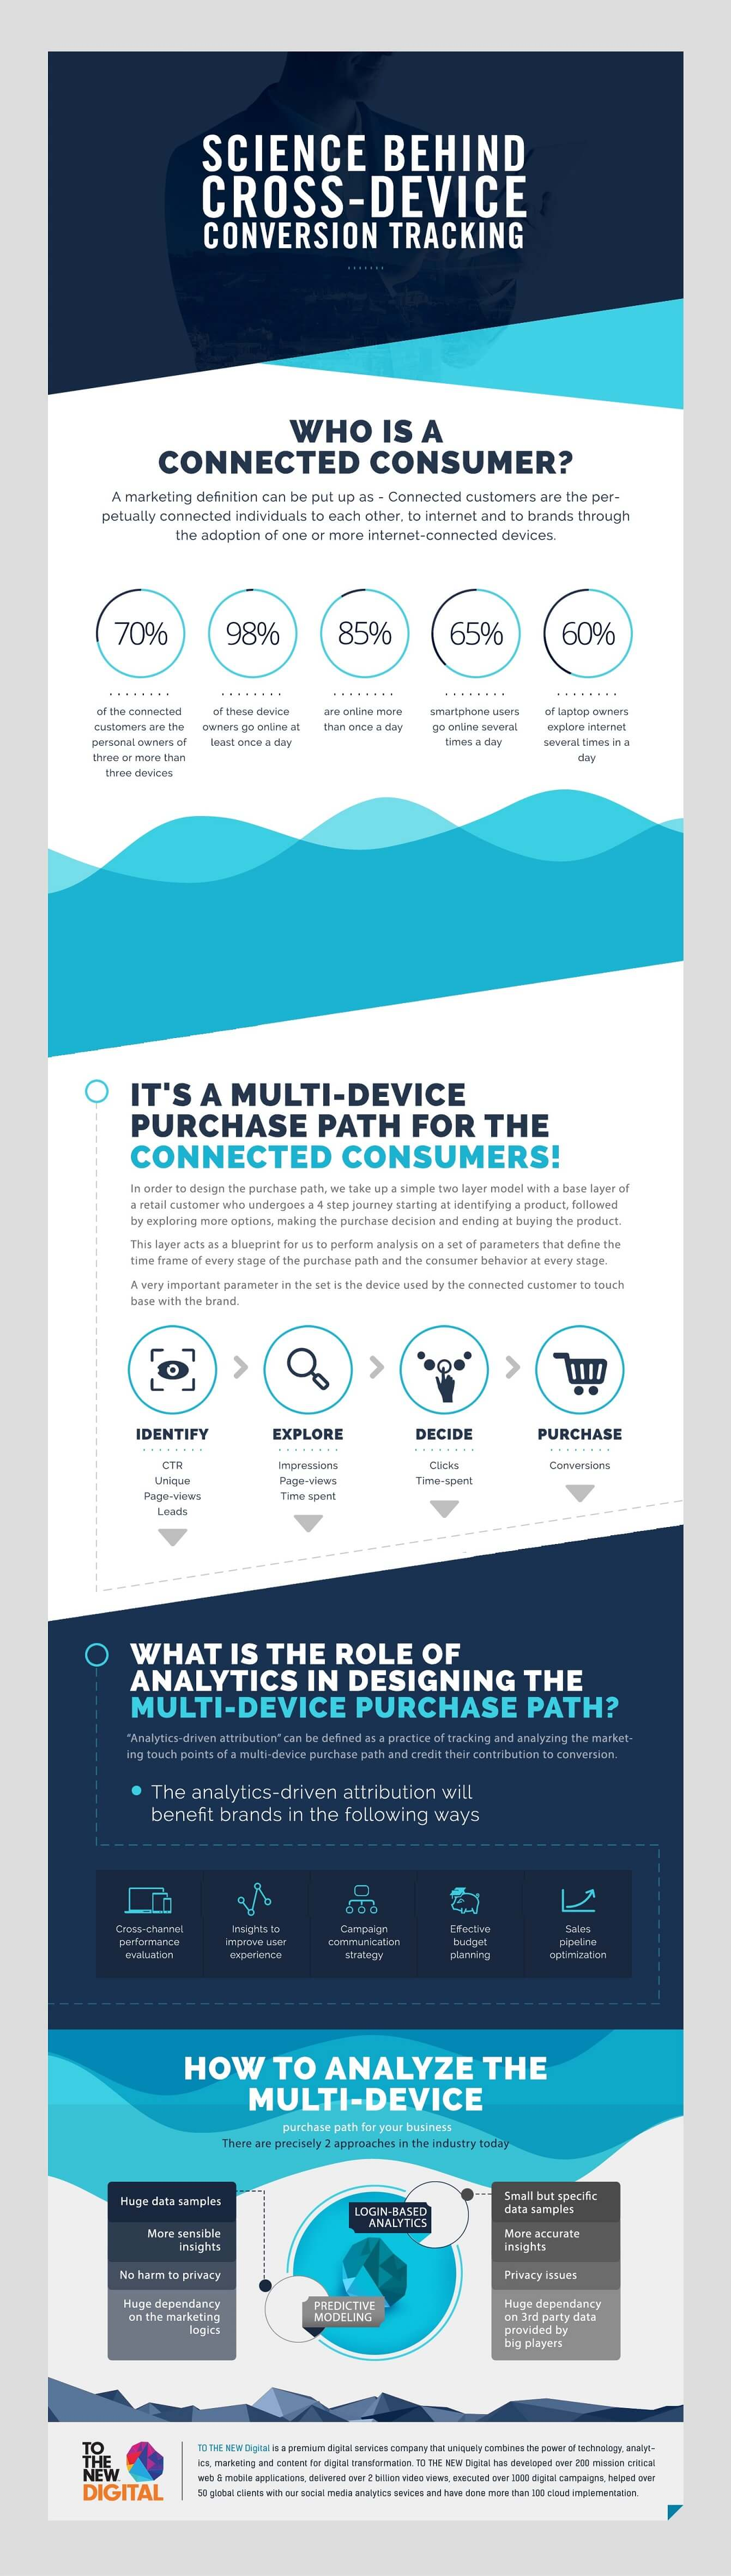 The Science Behind Cross-device Conversion Analytics